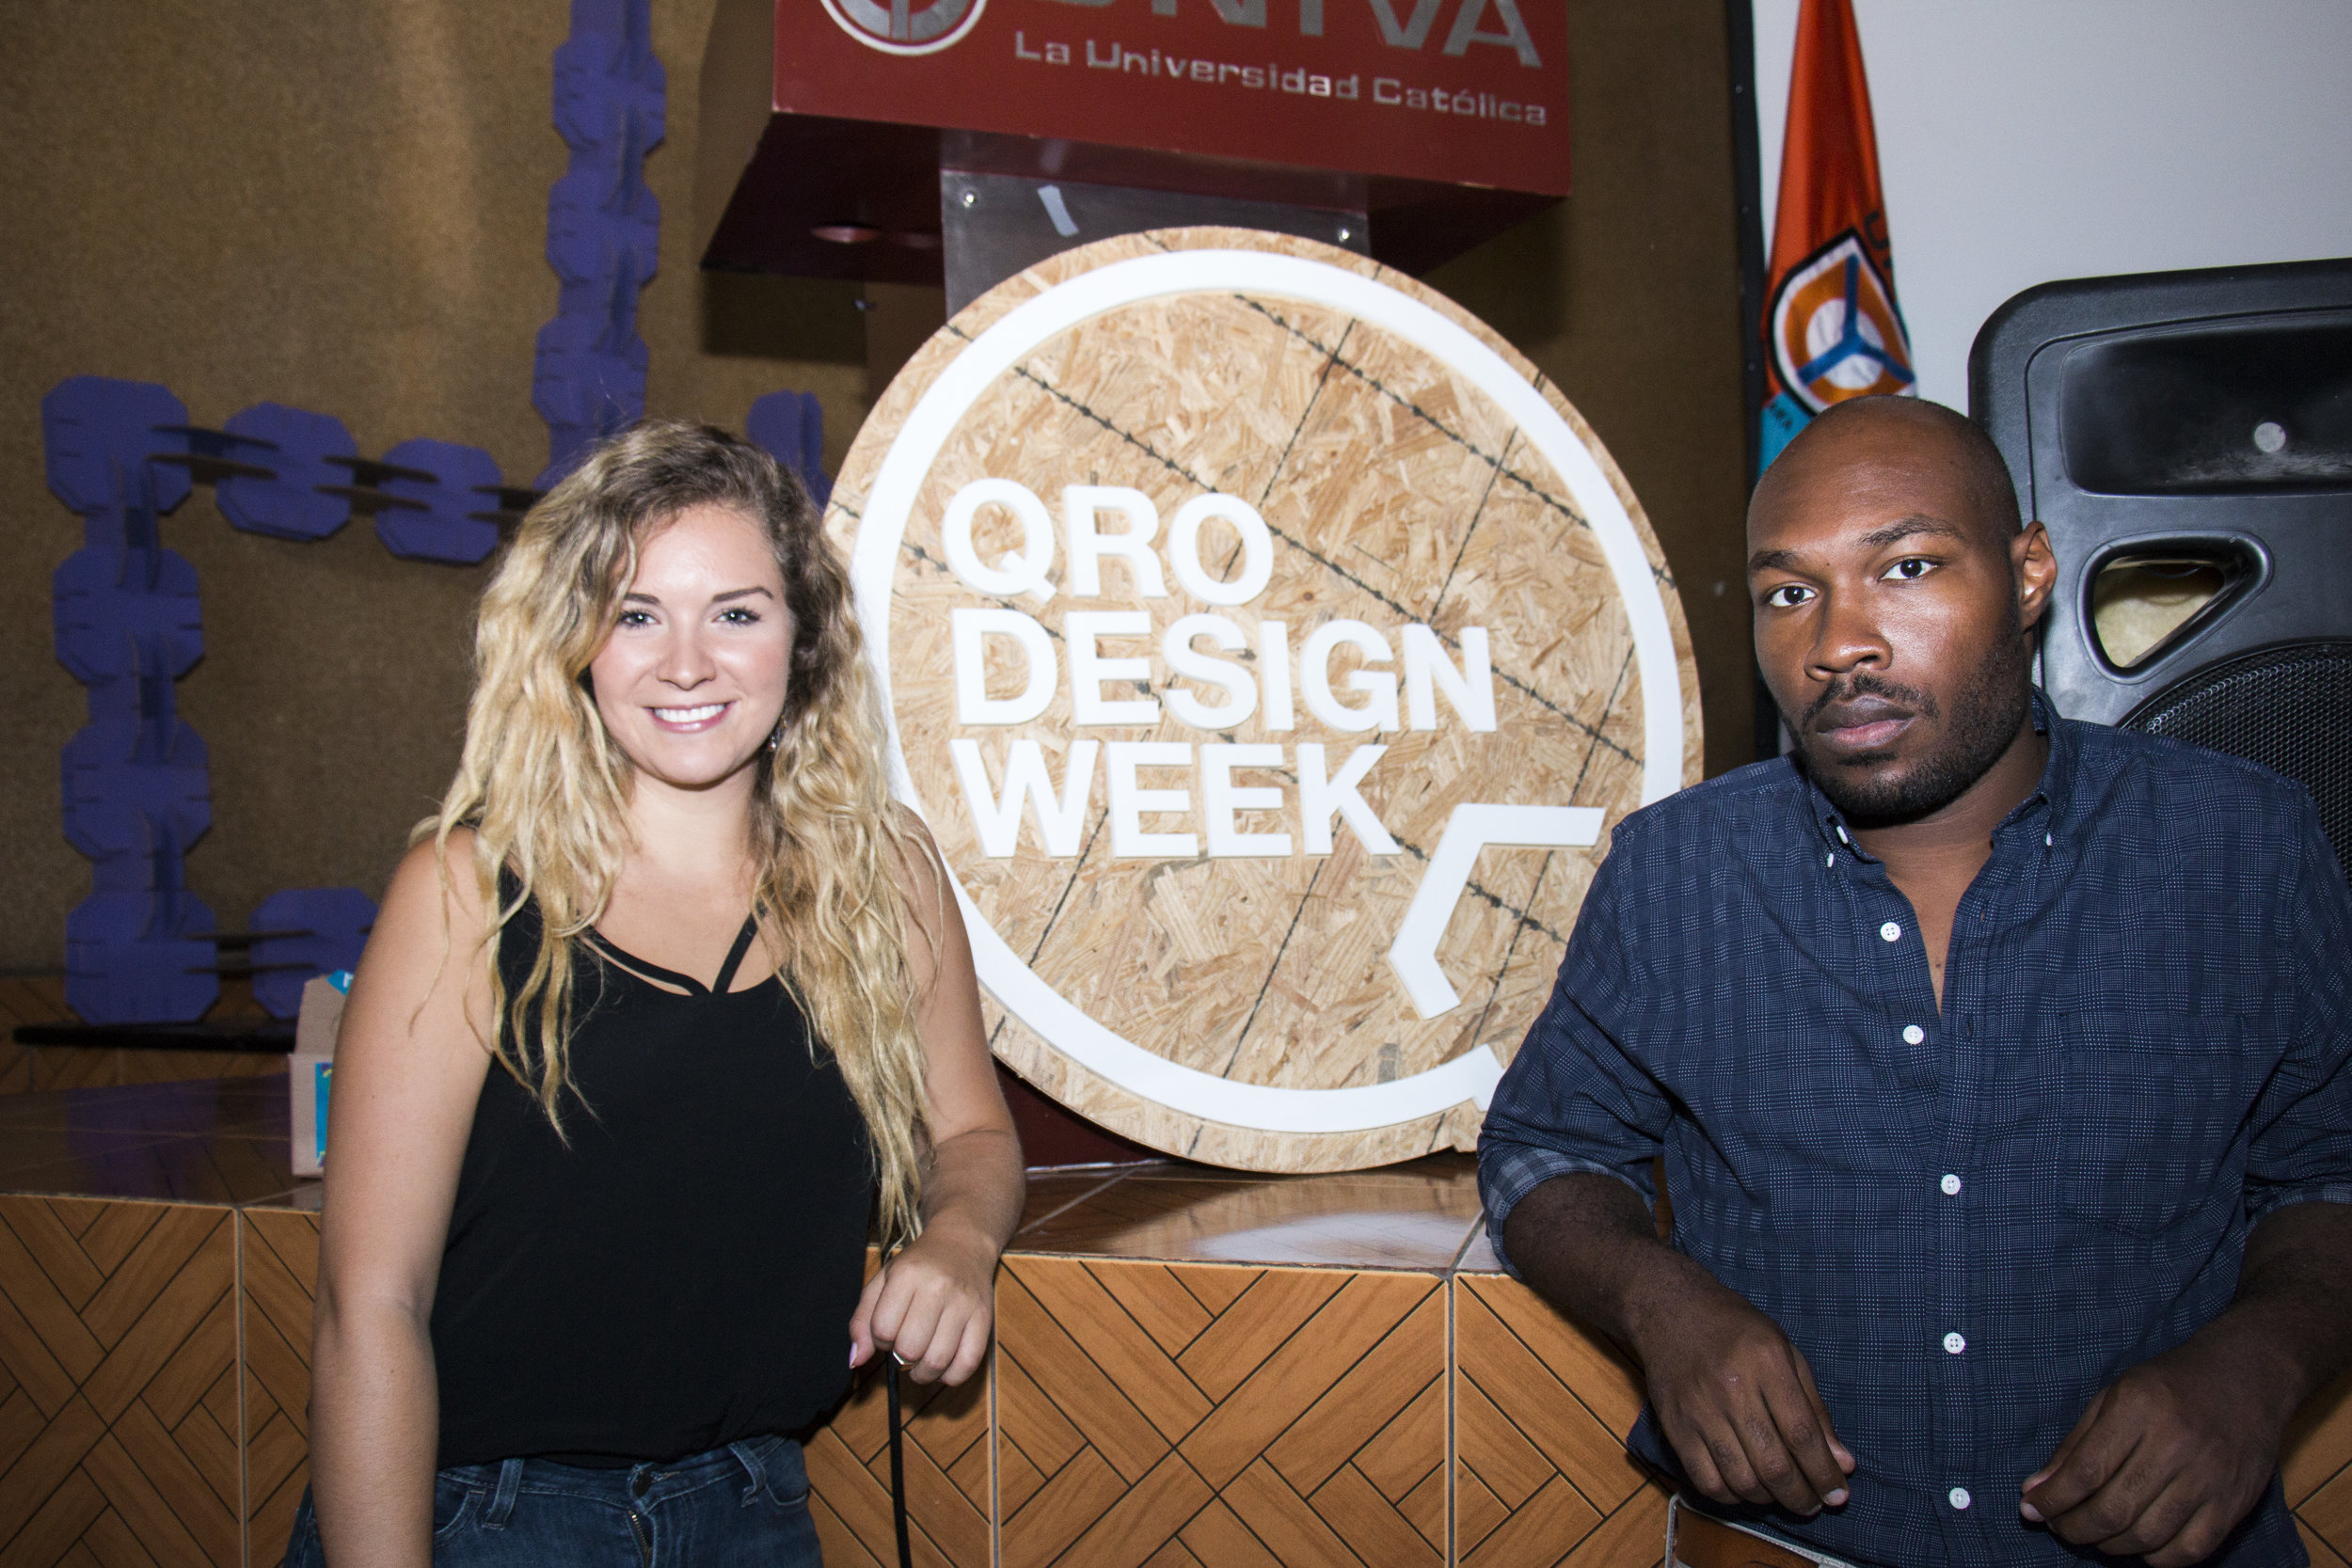 QRO DESIGN WEEK - Keynote speaker along with CJ Johnson at QRO Design Week in Queretaro, Mexico.